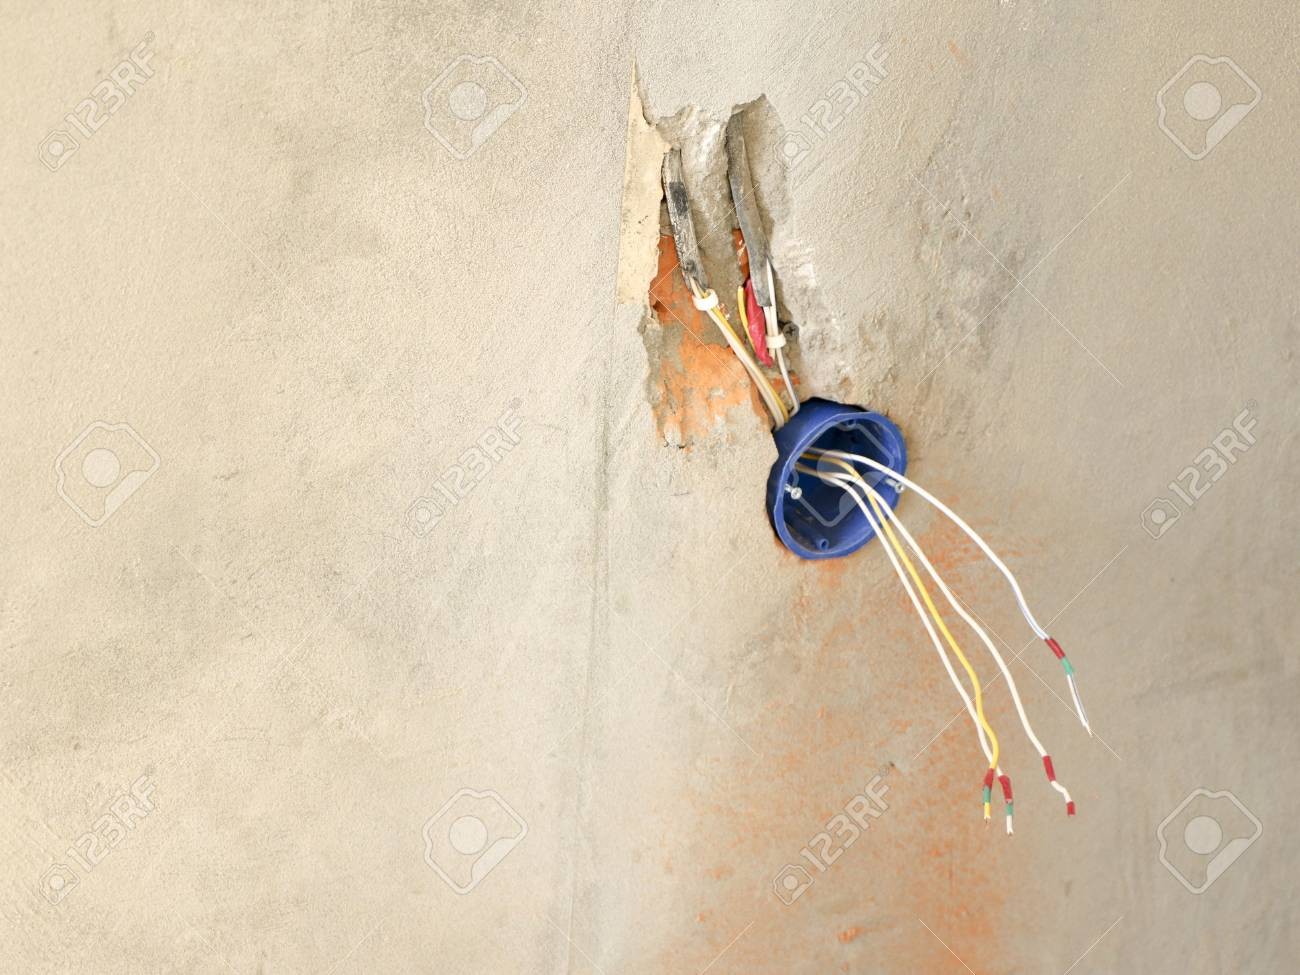 hight resolution of stock photo wall socket installation work on installing electrical outlets electrician prepares wiring fitting outlets